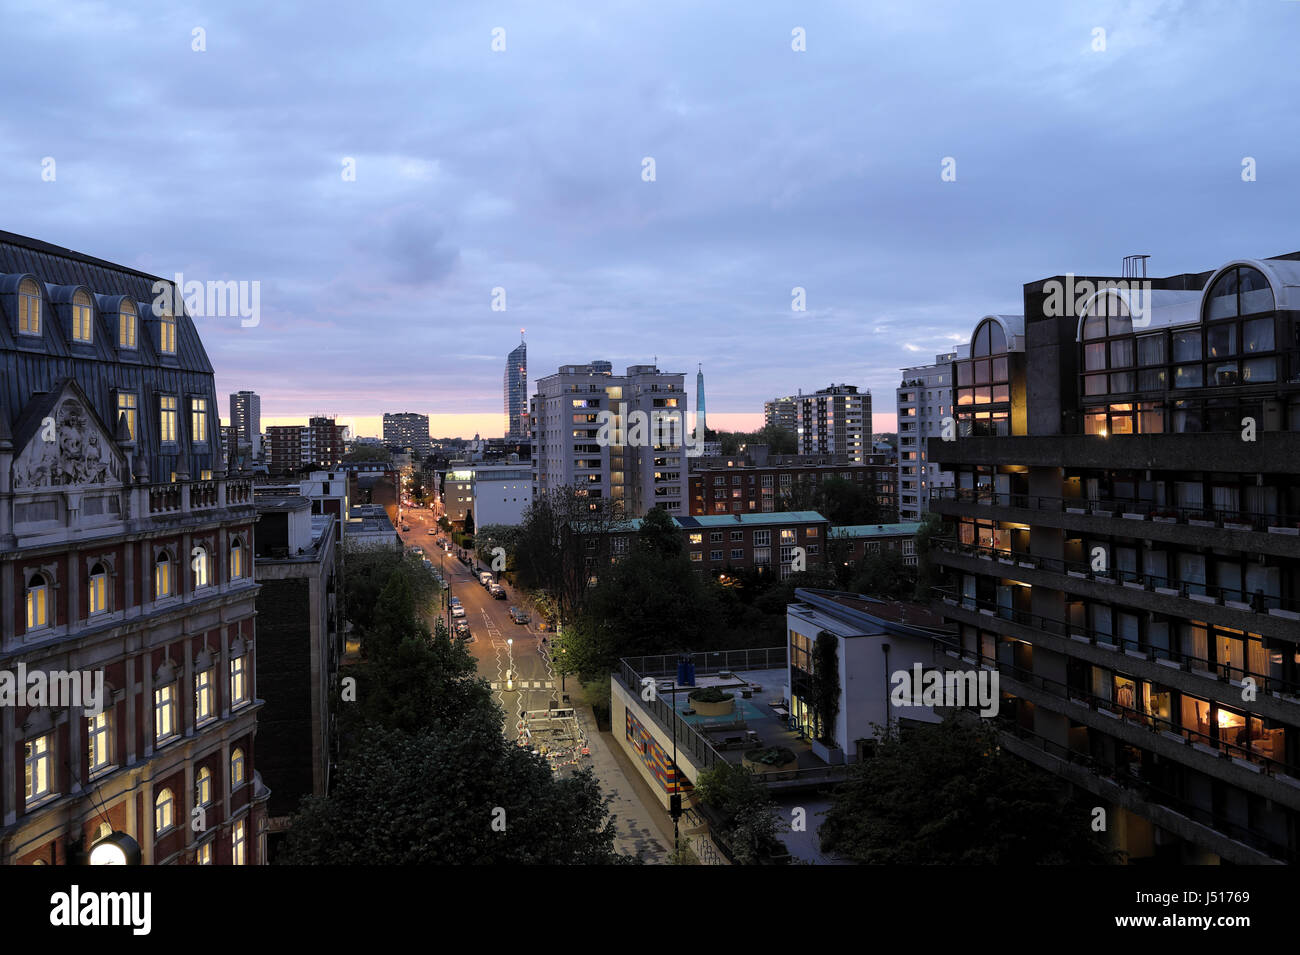 Aerial view over Golden Lane and Barbican Estate flats at night with thick cloud cover and lit up street below springtime - Stock Image